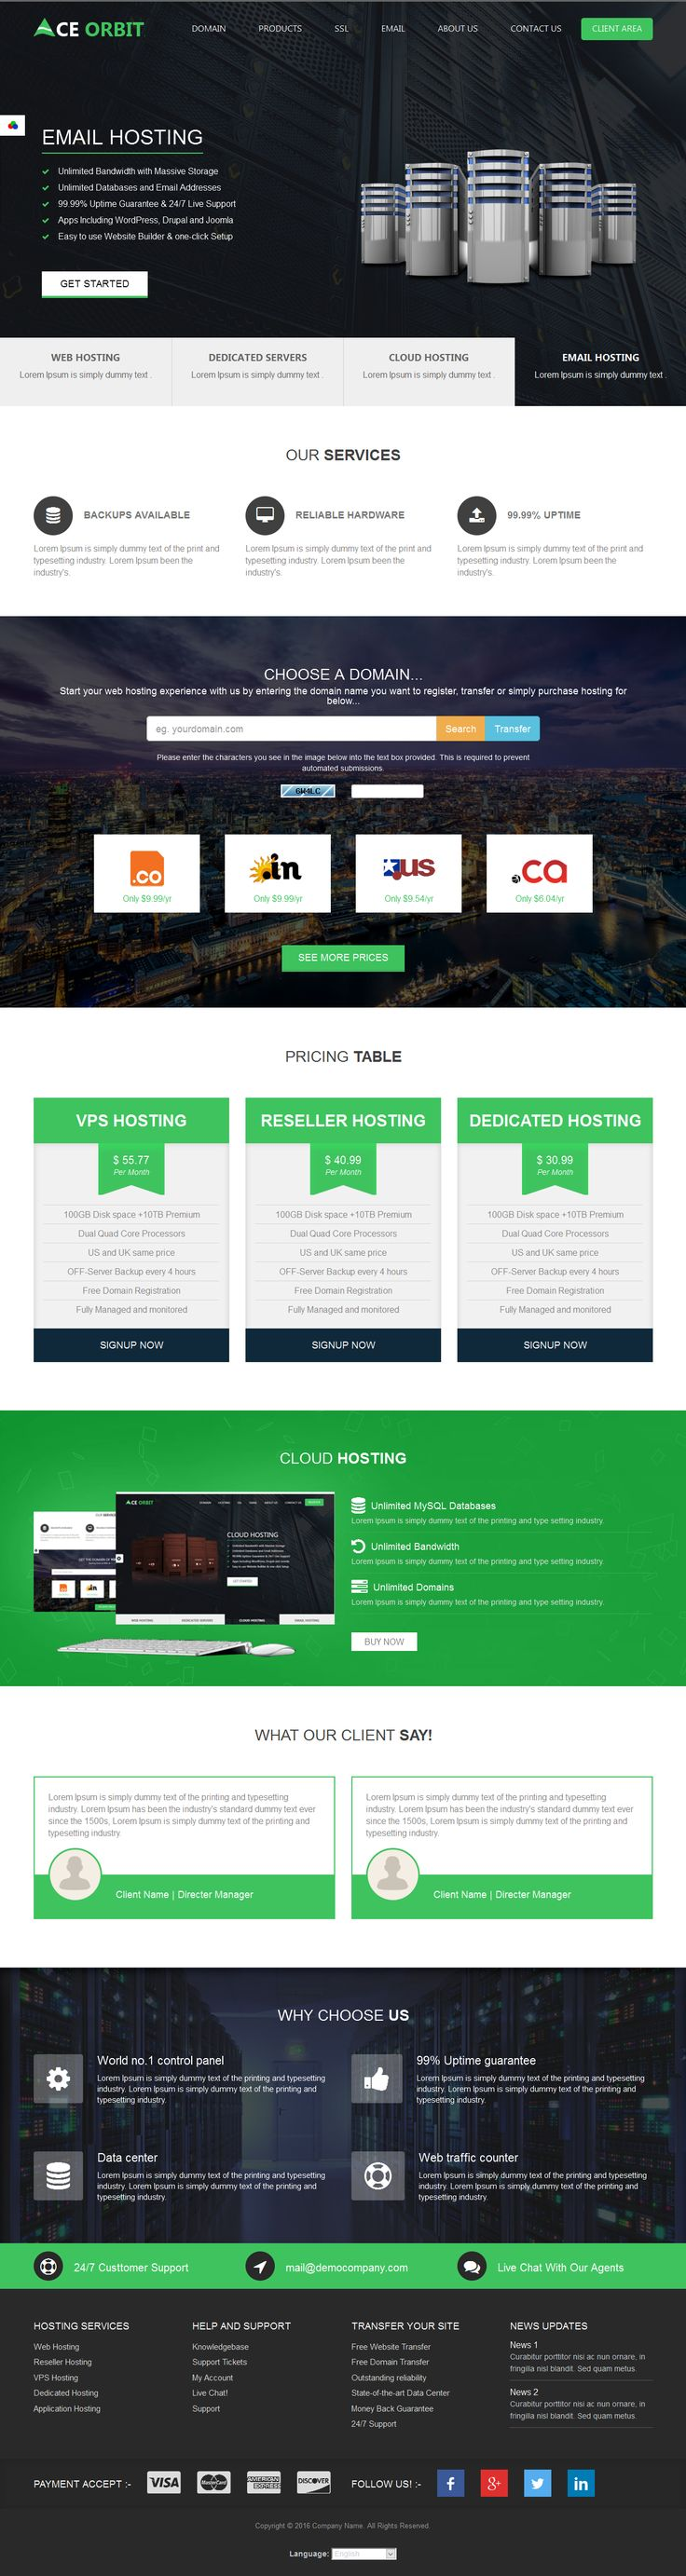 Colors for professional website - Ace Orbit Is An Seo Optimized Whmcs 6 Web Hosting Theme Professional